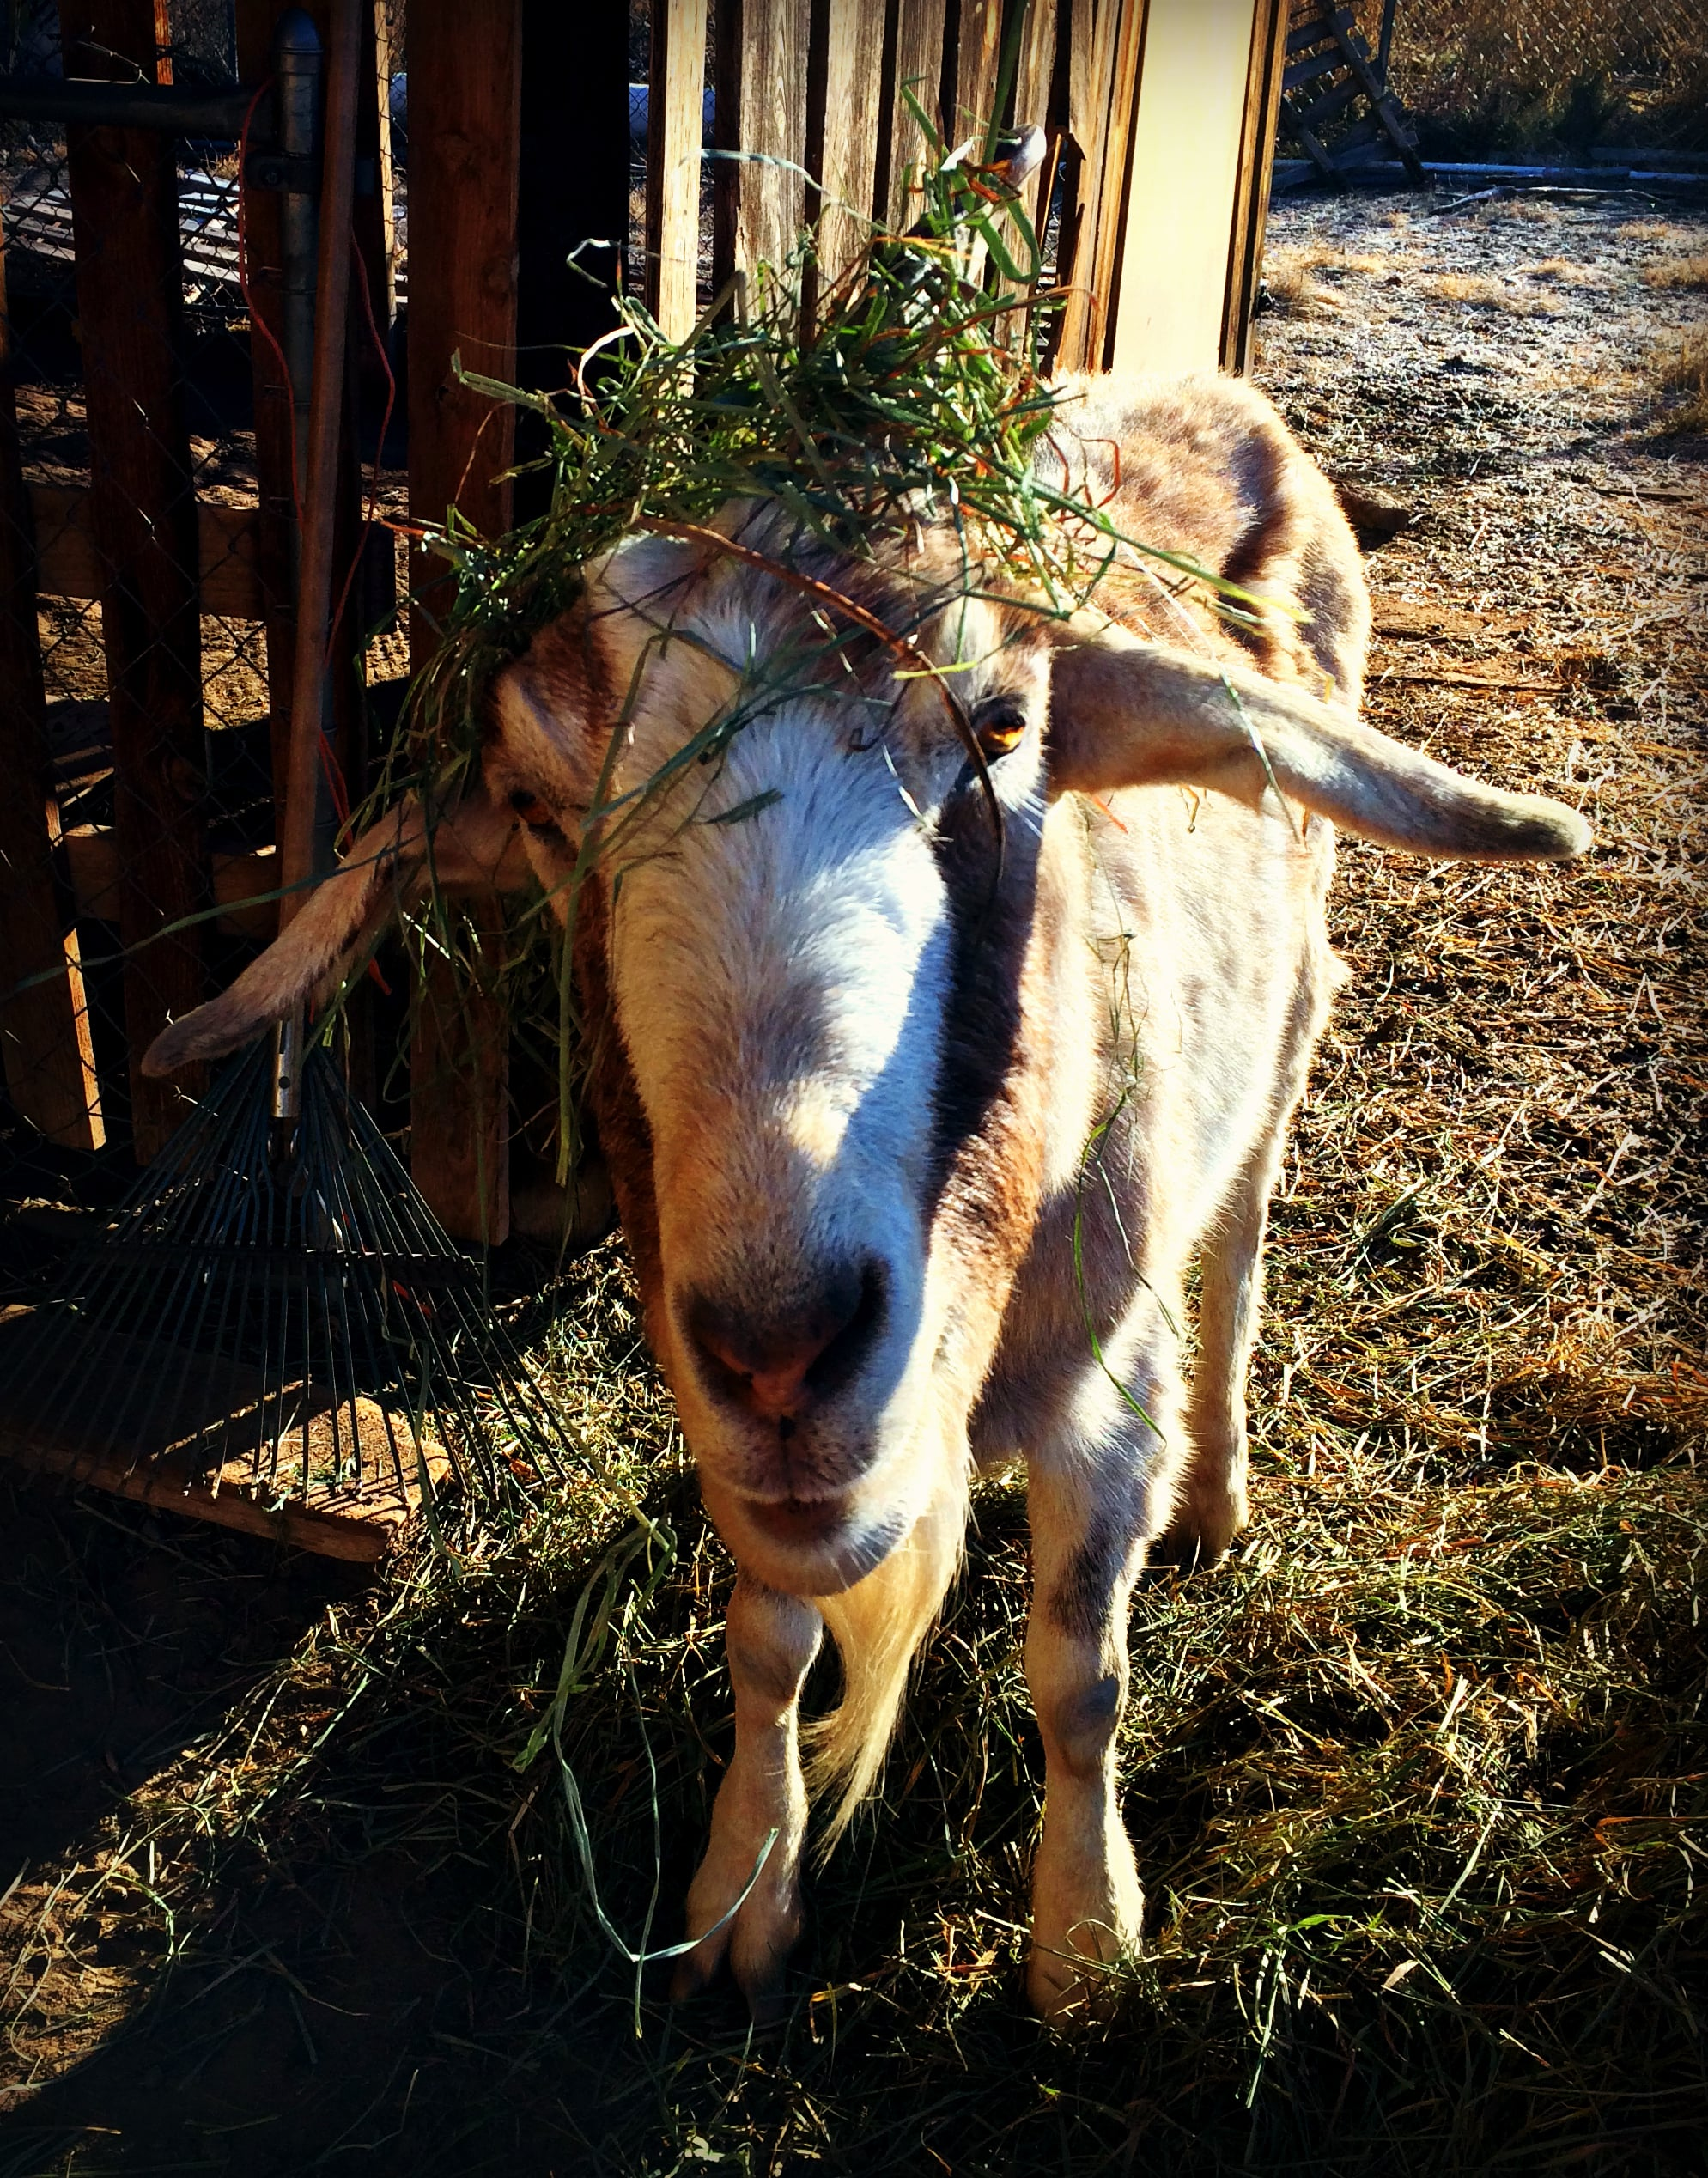 Every morning I wake up and step out into the cold to have breakfast with the goats. They are happy to see me and I am happy to see them. If it is true, laughter is the best medicine, then I have a backyard of wellness.